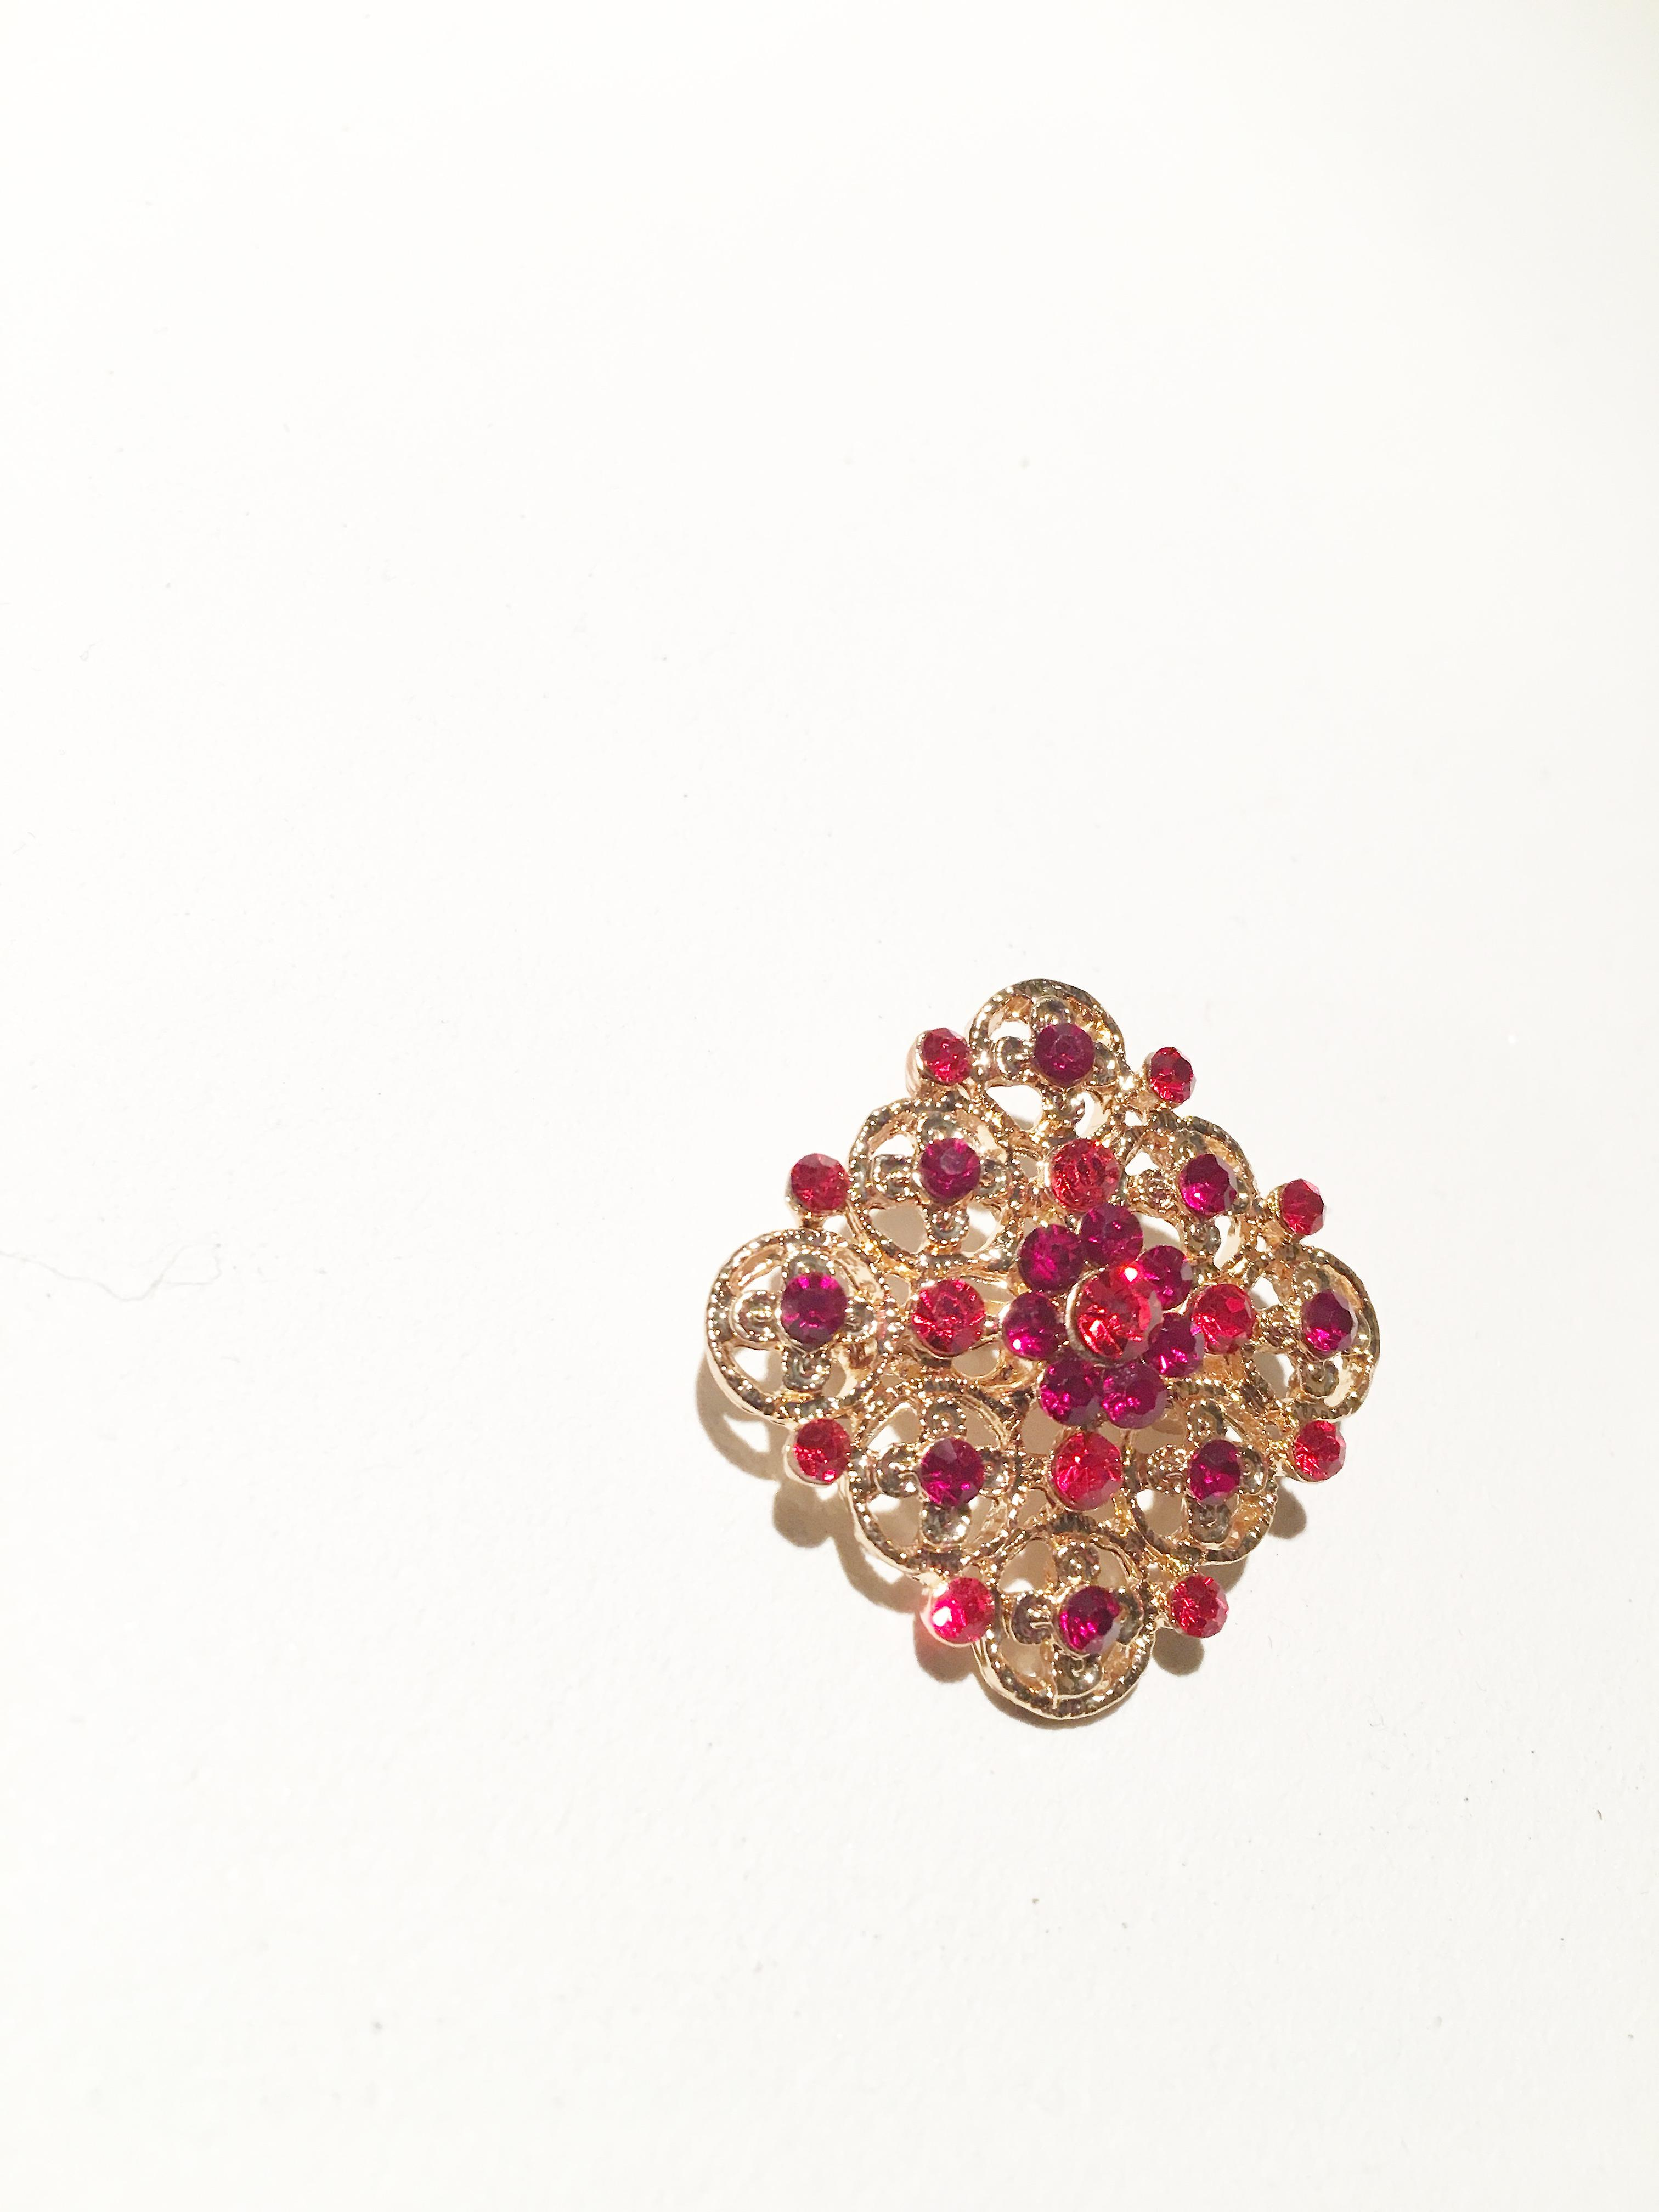 gold and red rectangle brooch